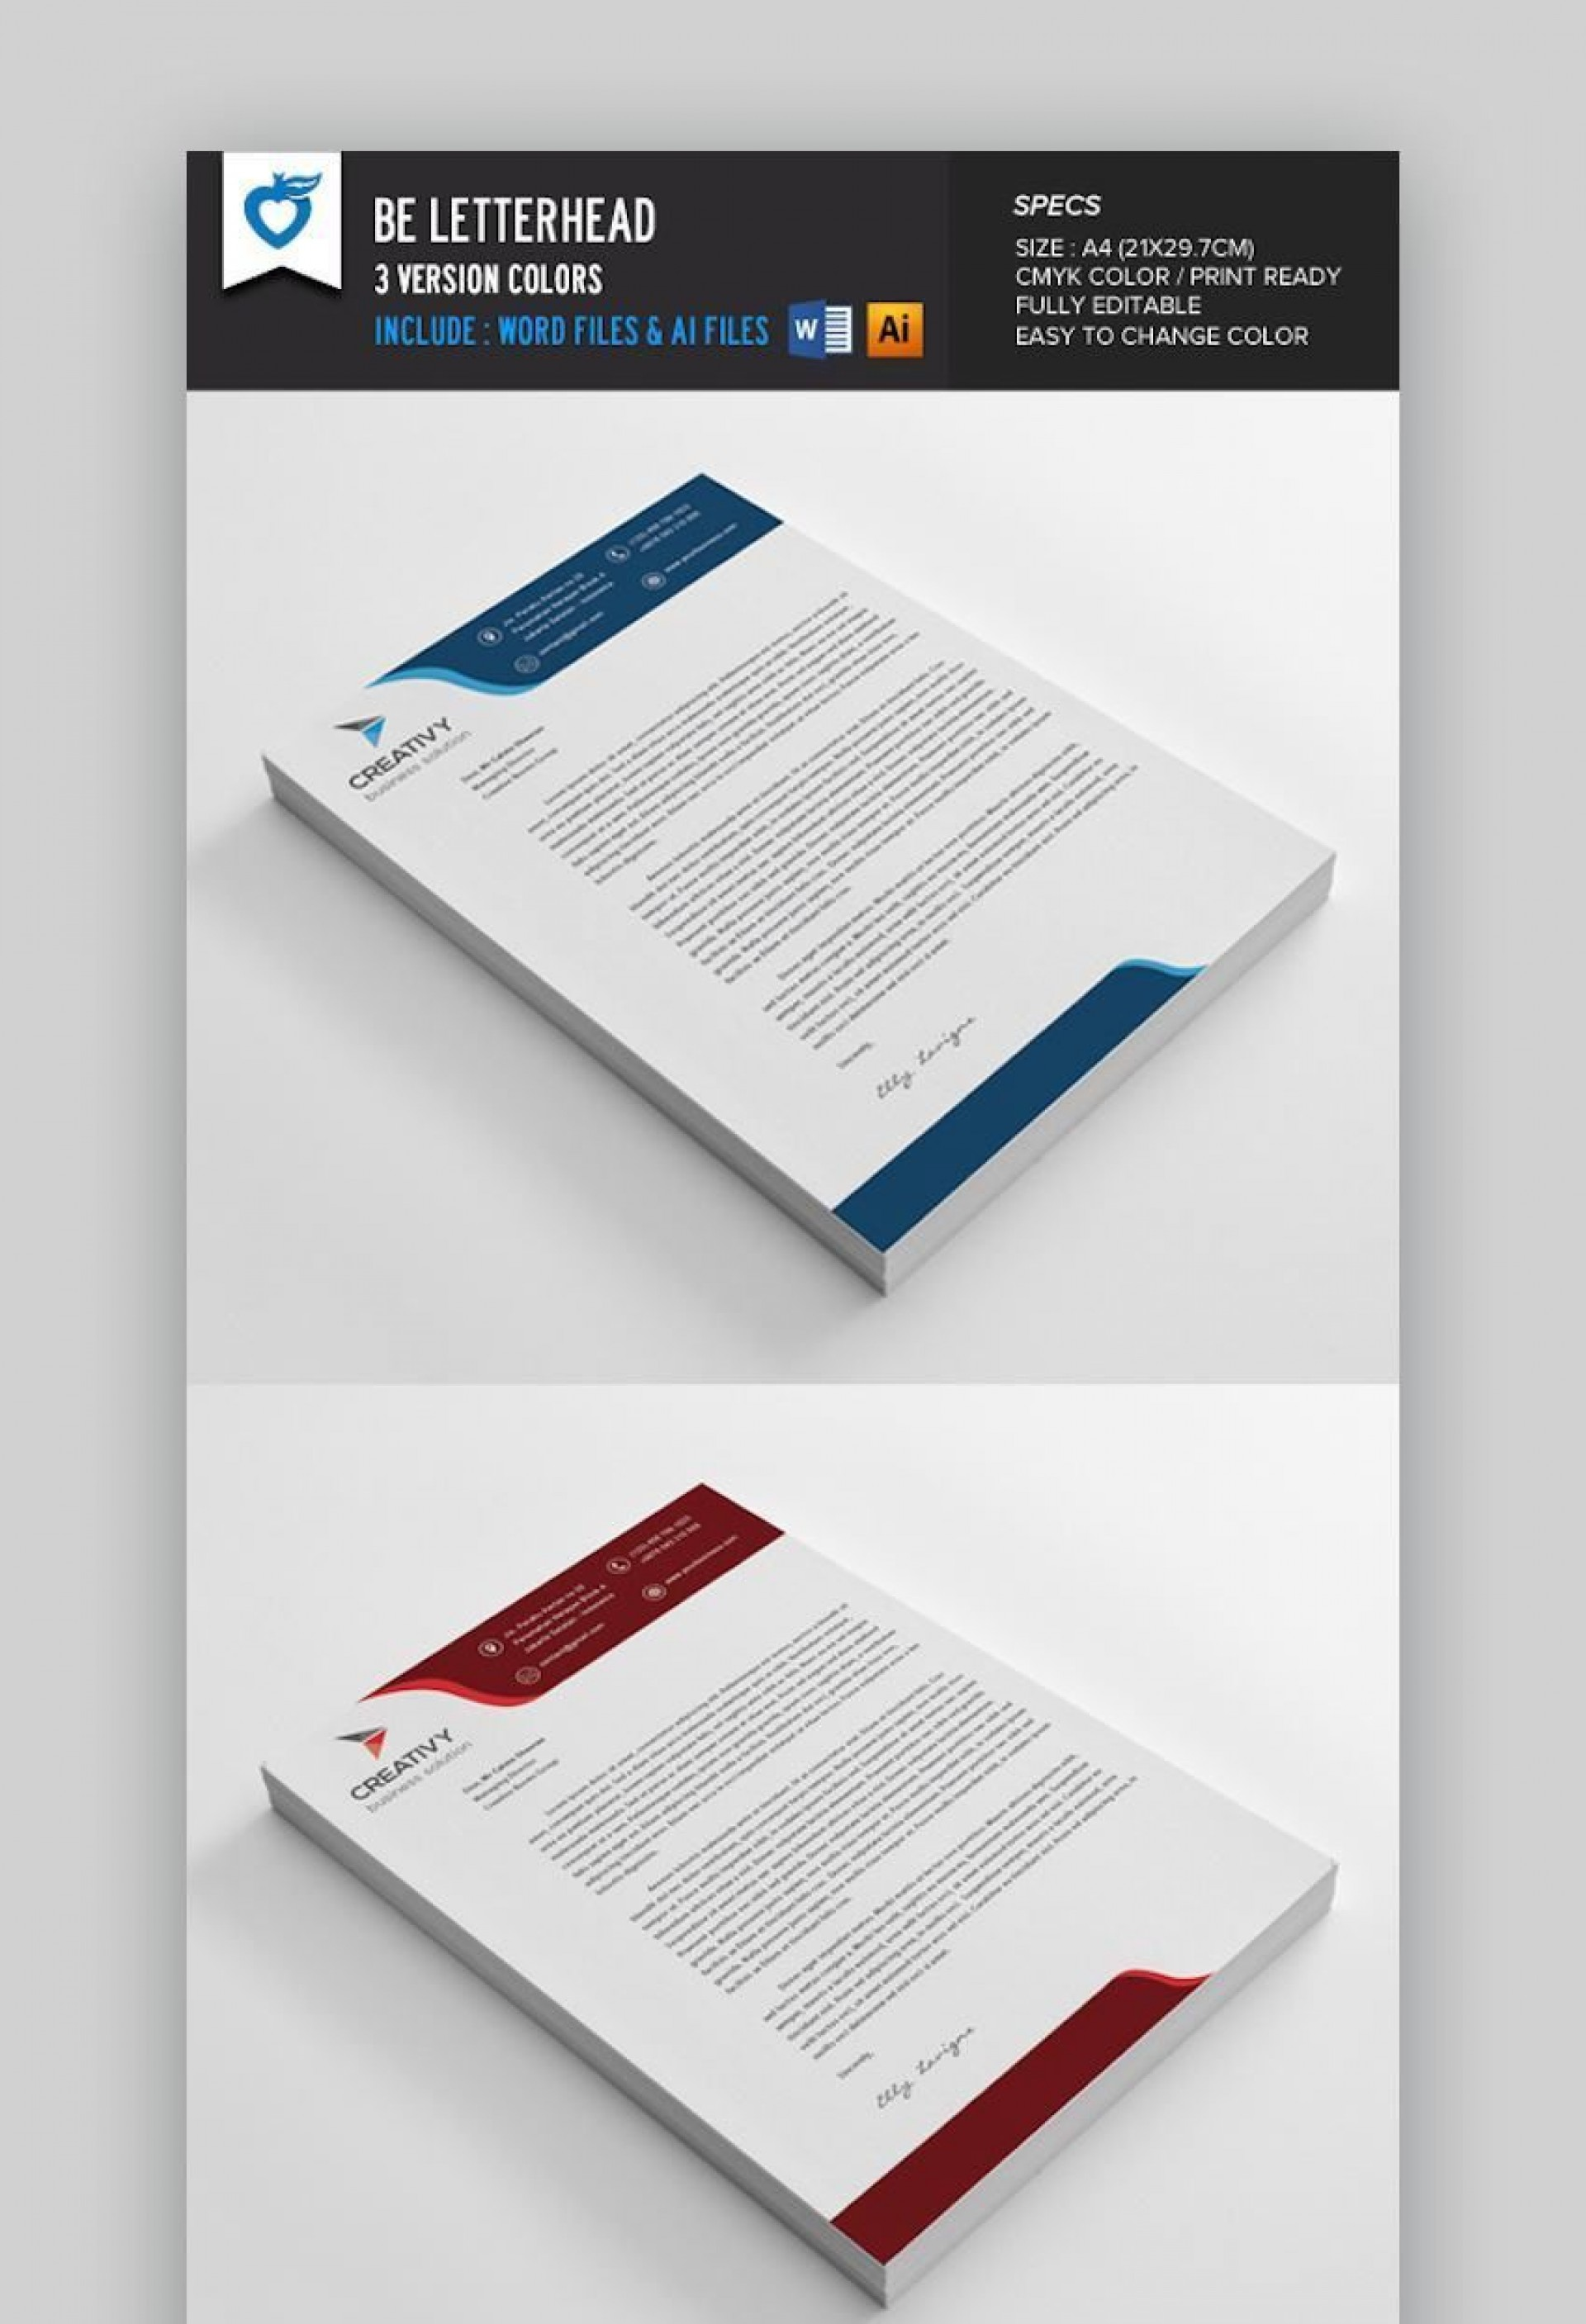 006 Staggering Letterhead Template Free Download Doc Image  Company Format1920